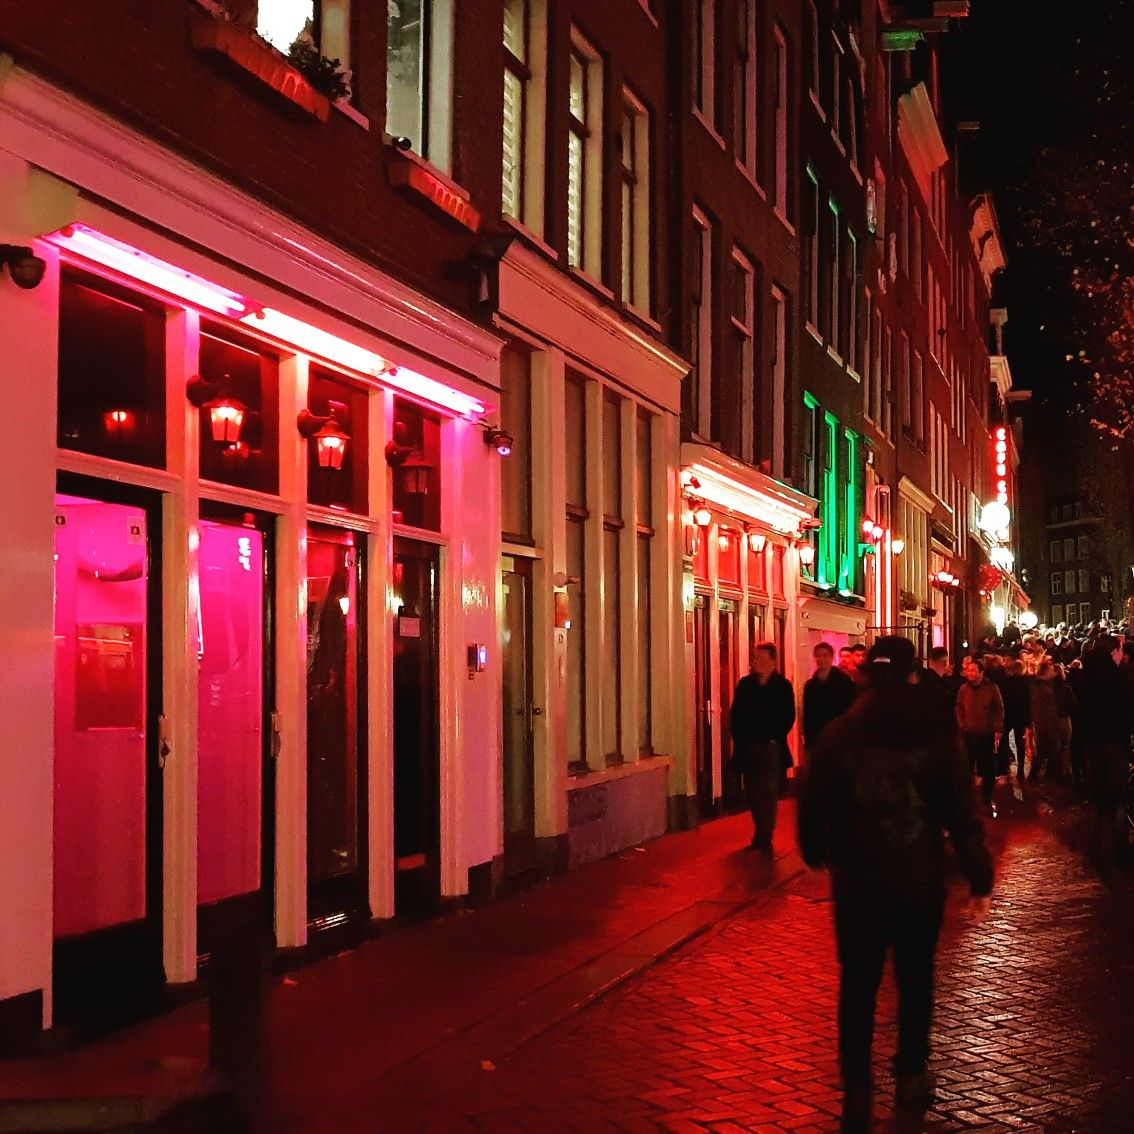 Pin By Life Of Dreams On Explore In 2020 Amsterdam Red Light